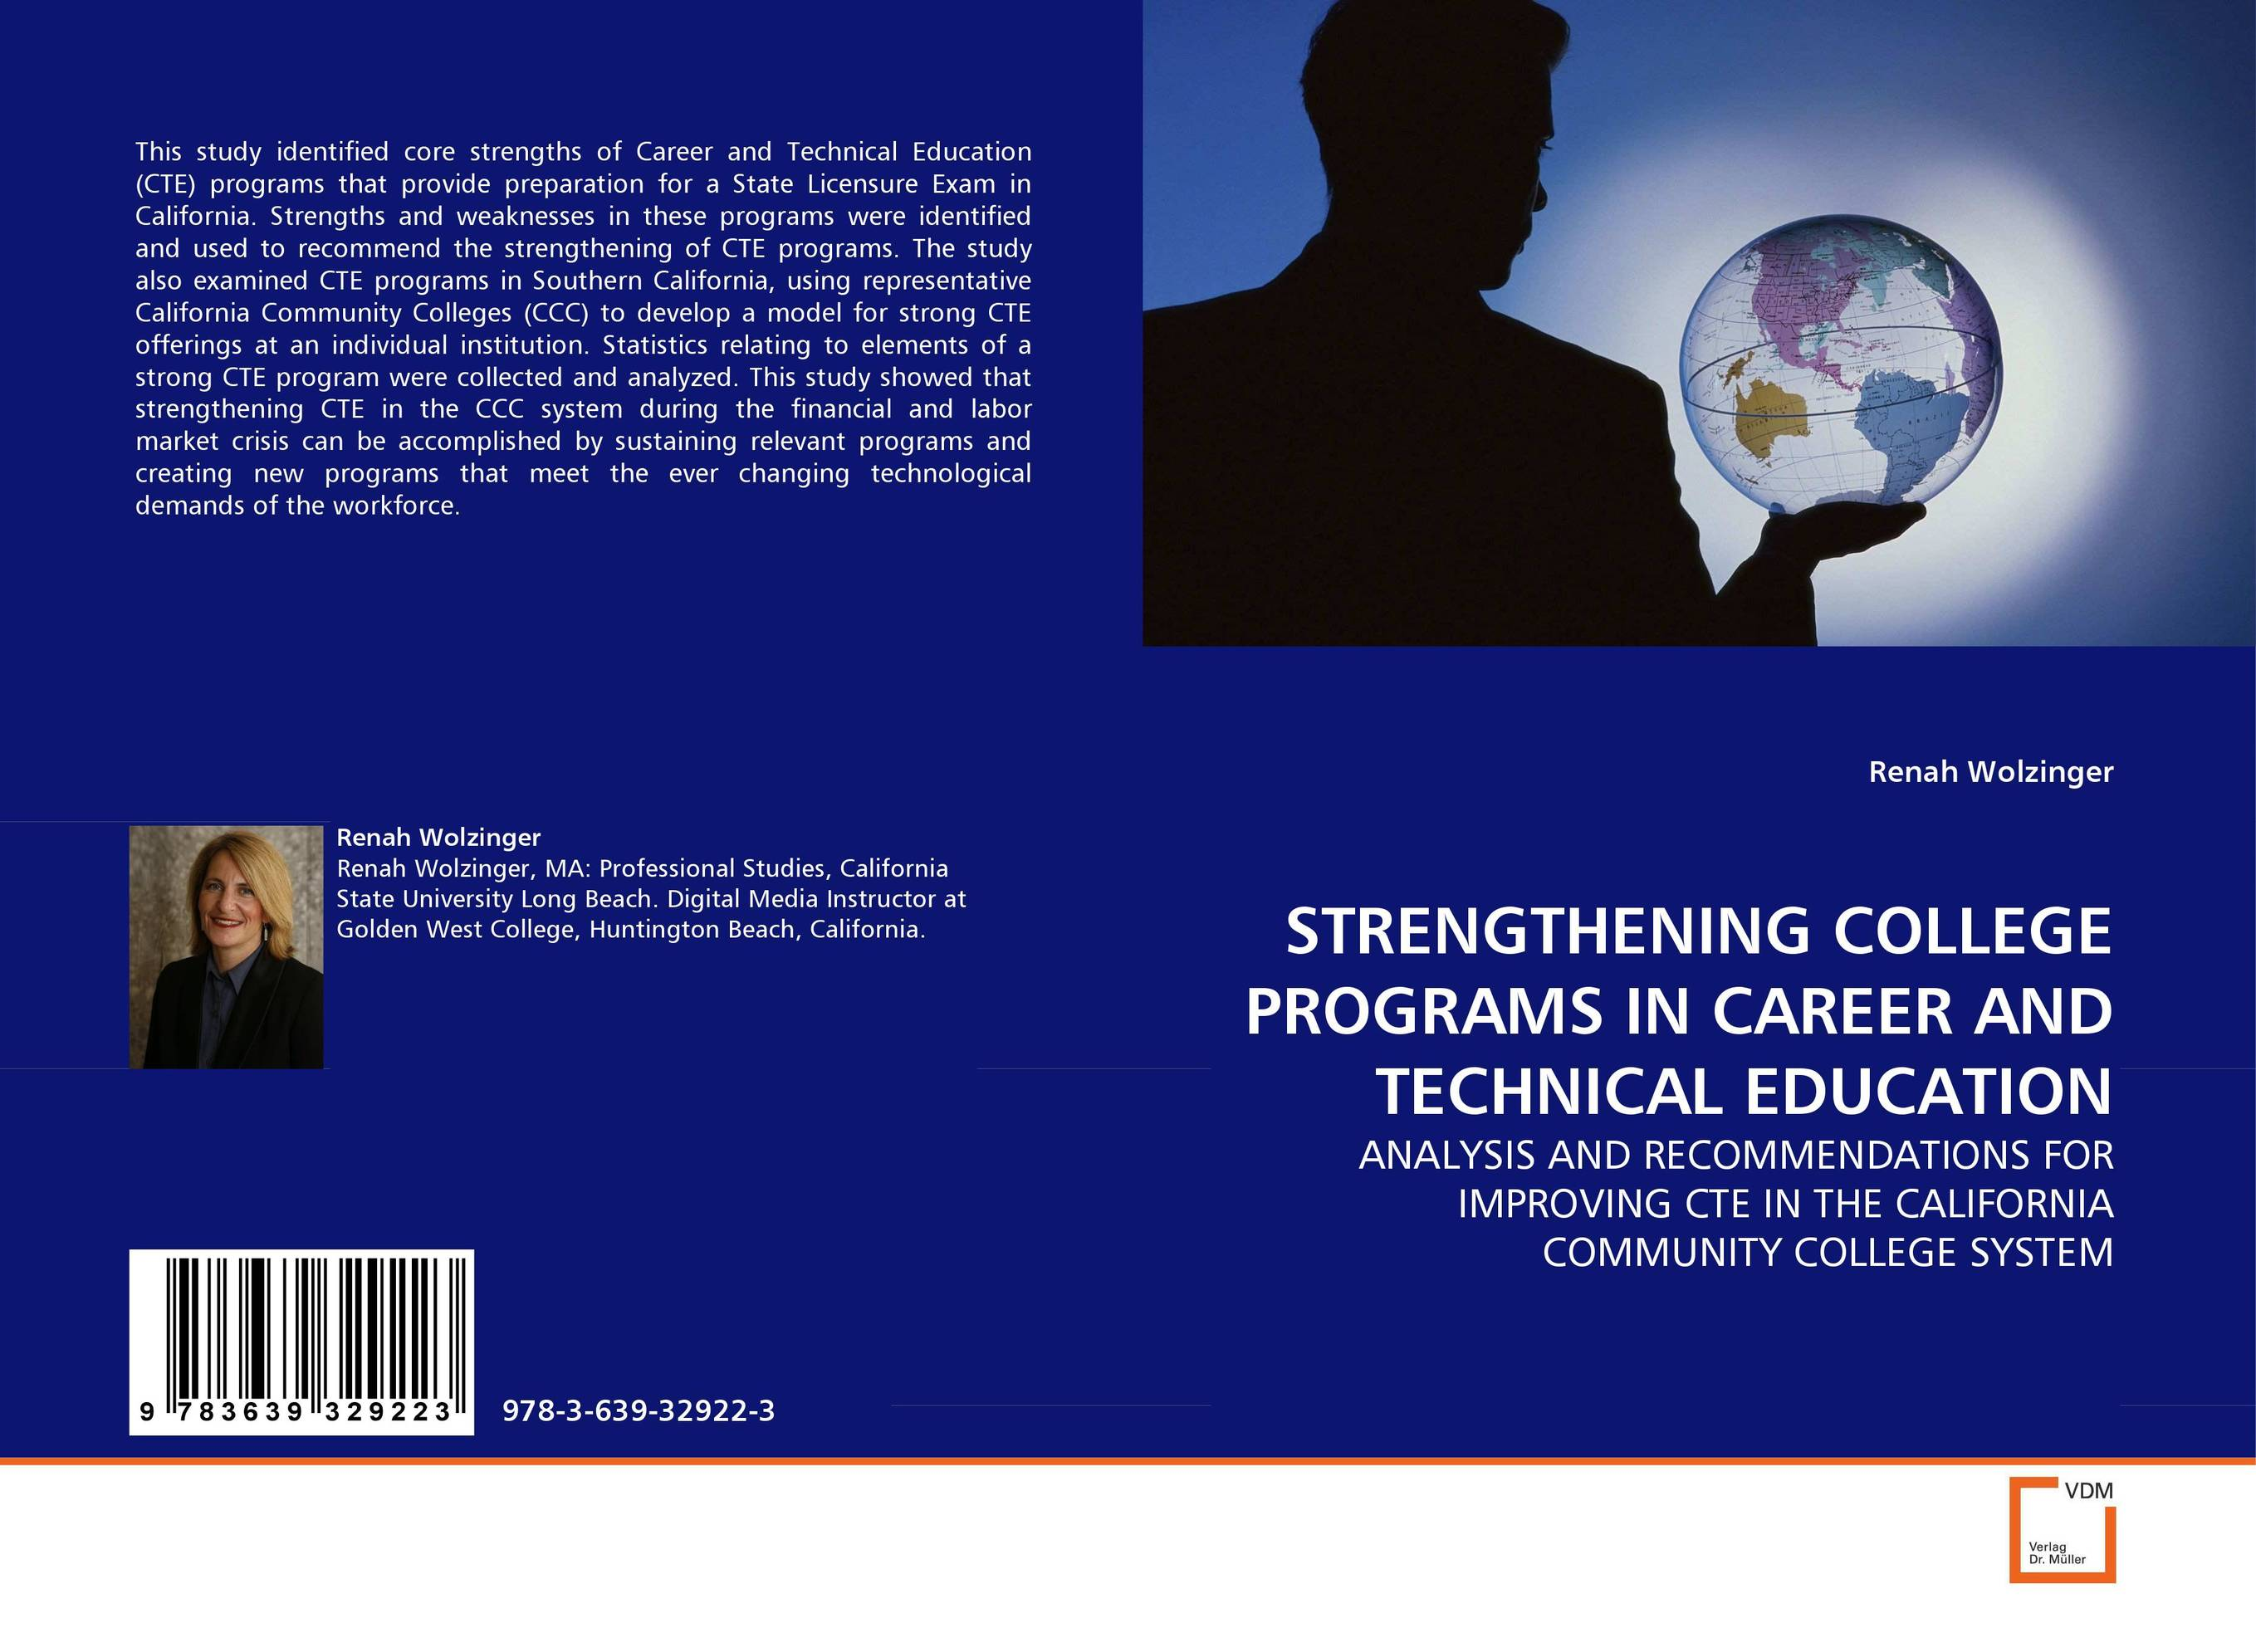 STRENGTHENING COLLEGE PROGRAMS IN CAREER AND TECHNICAL EDUCATION pathways to college the impact of inventive pre collegiate programs